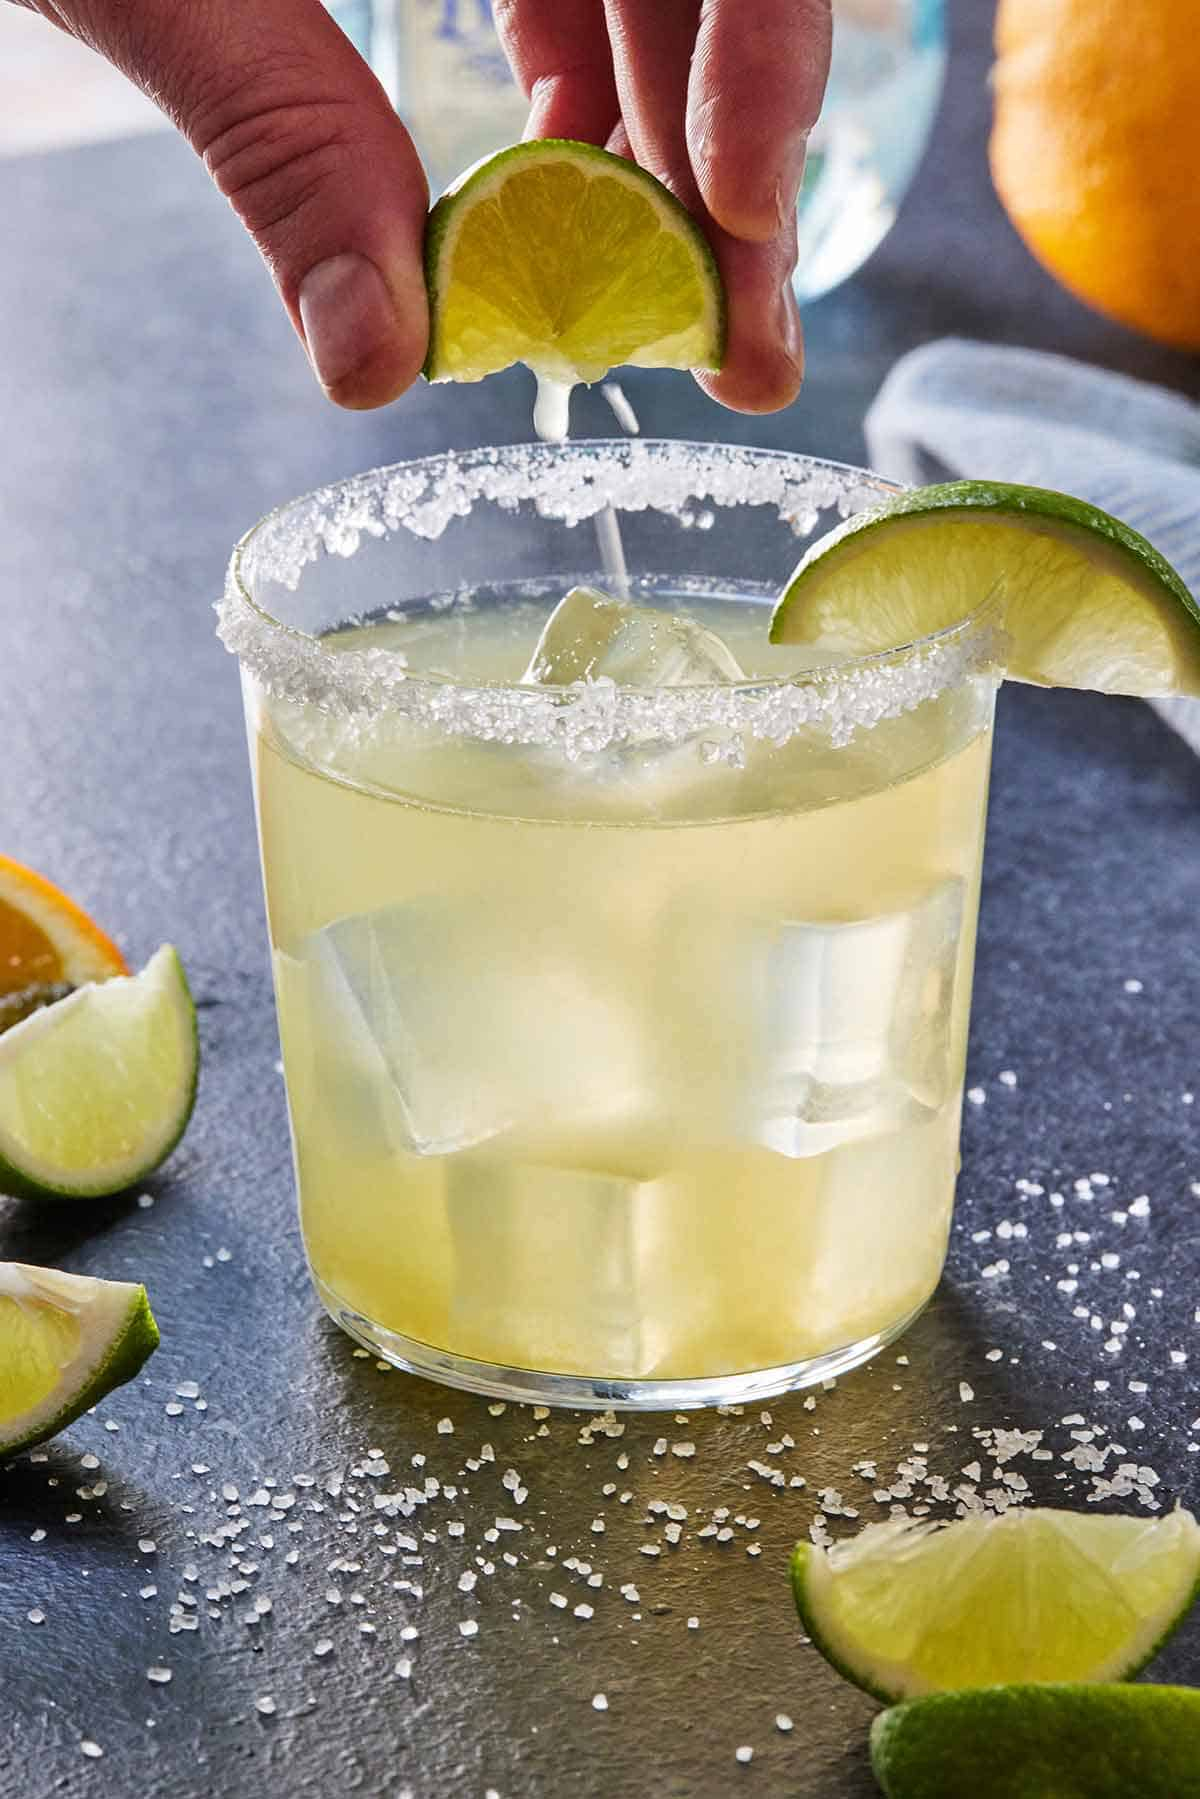 A glass of skinny margarita with a lime wedge being squeezed overtop.